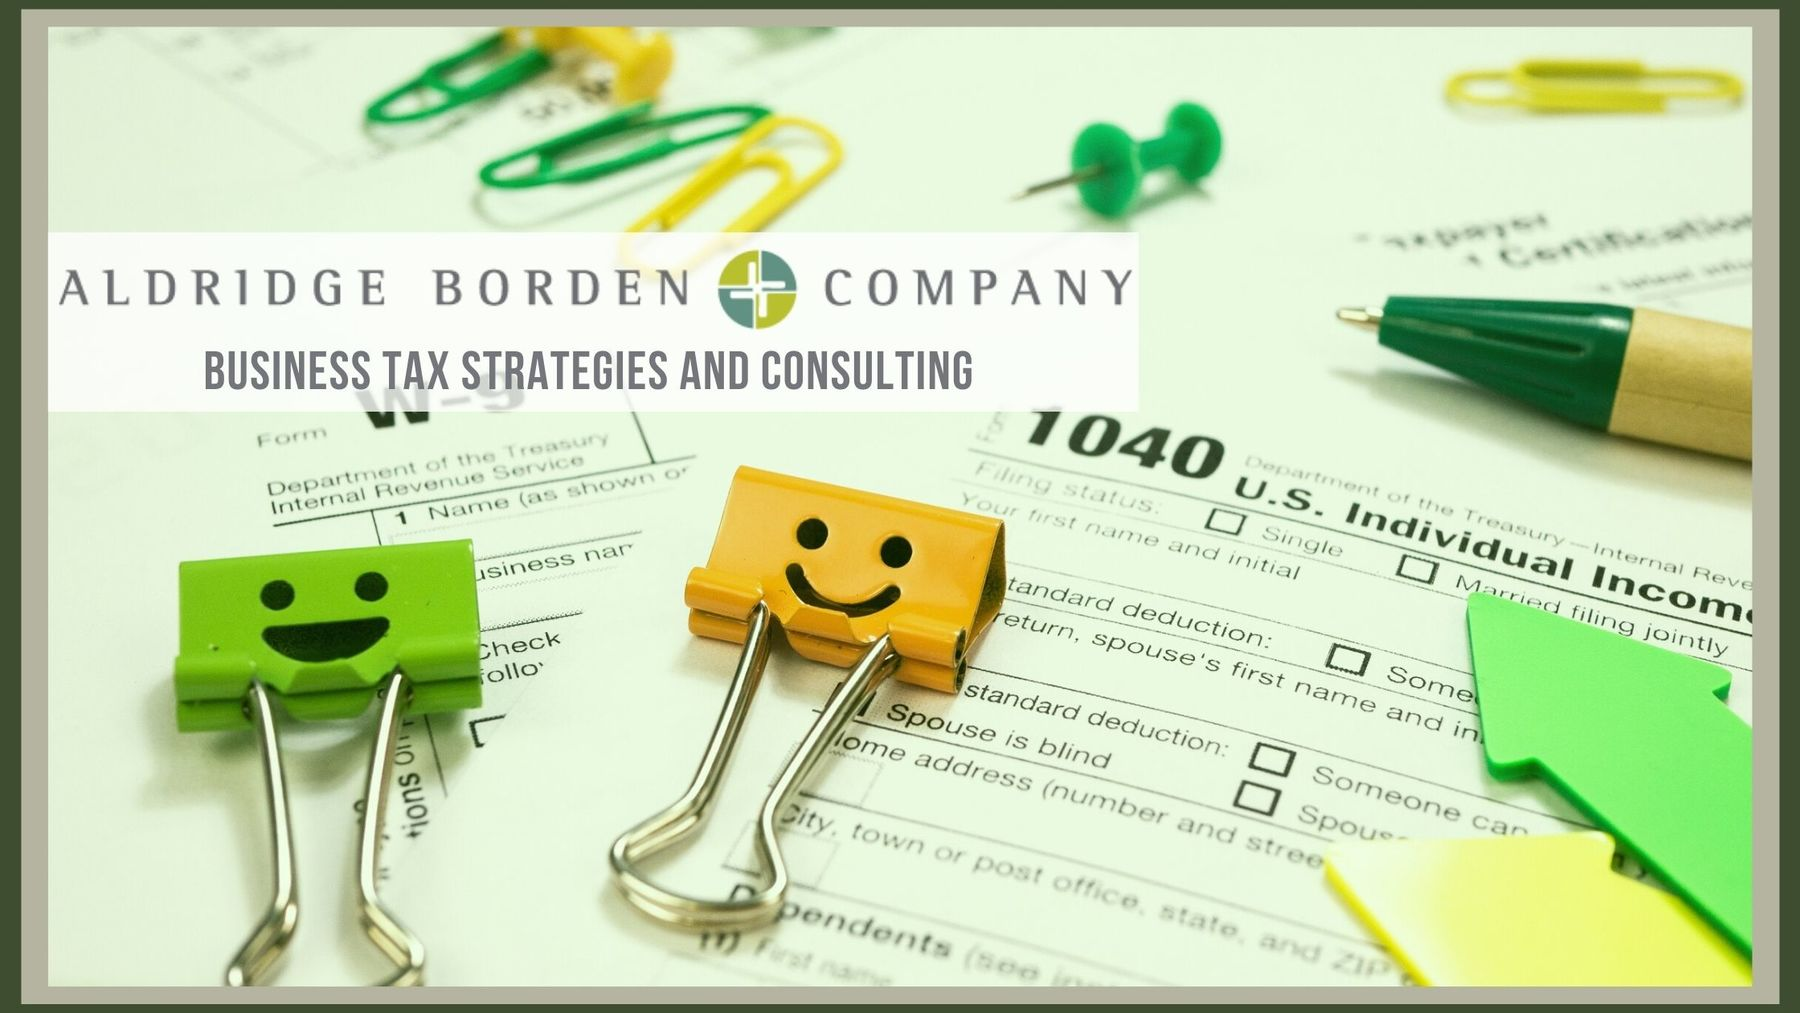 Business Tax Strategies Made Easy At Aldridge, Borden & Company